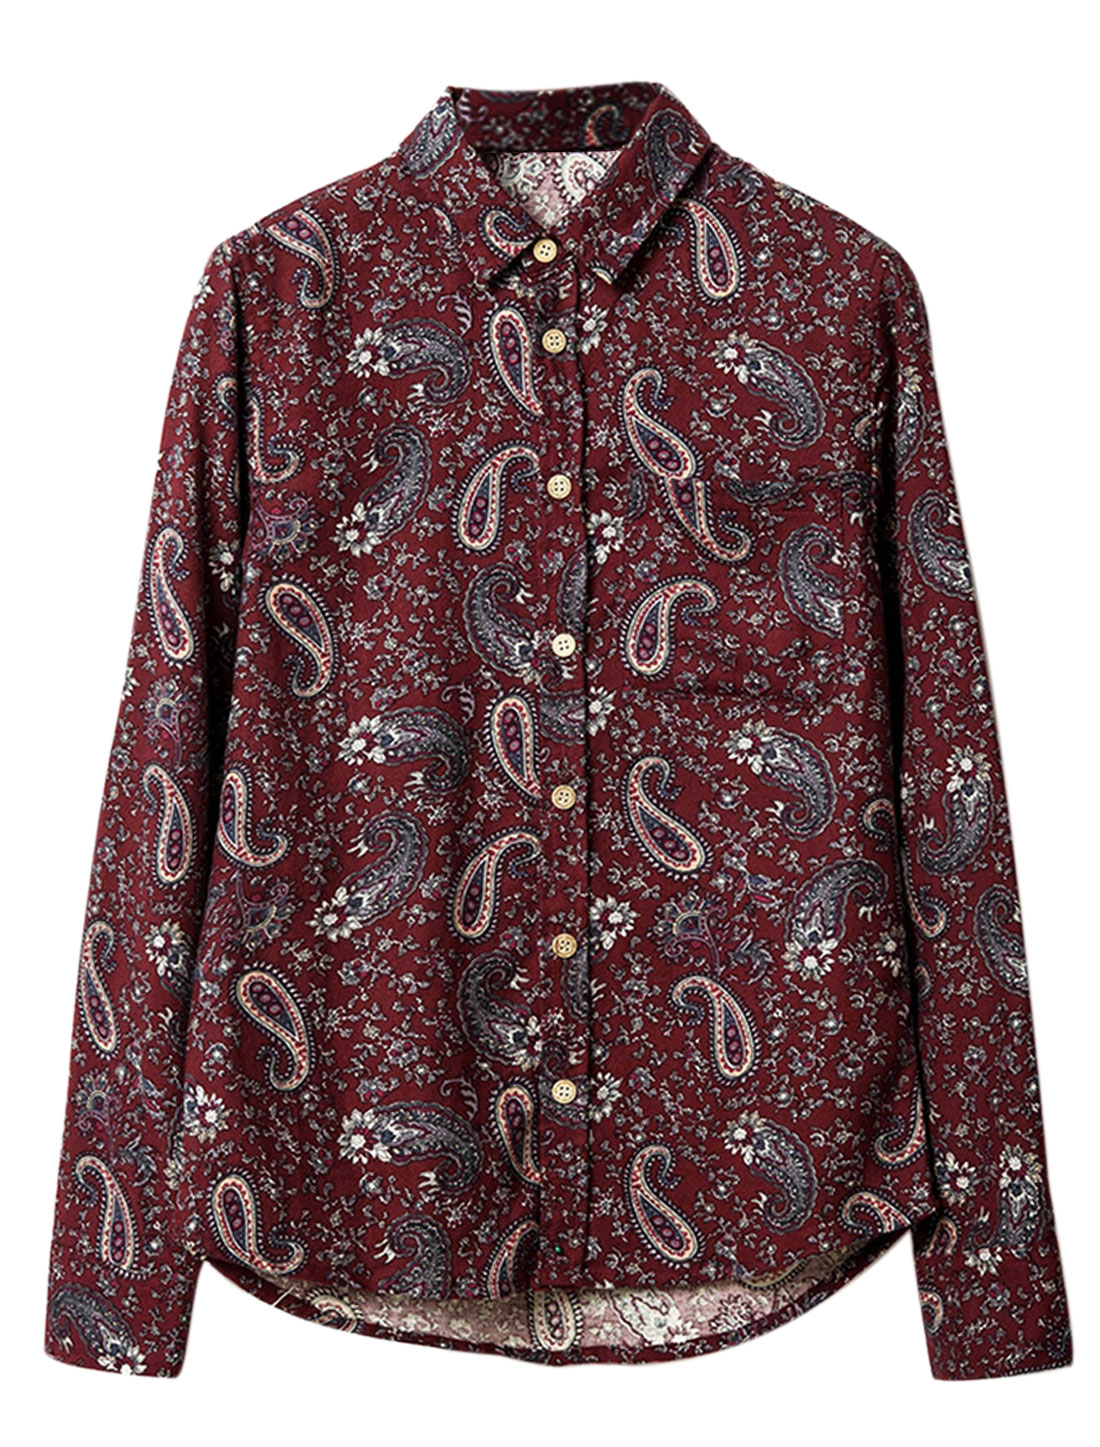 Men Point Collar Button Down Paisleys Single Chest Pocket Shirt Burgundy M